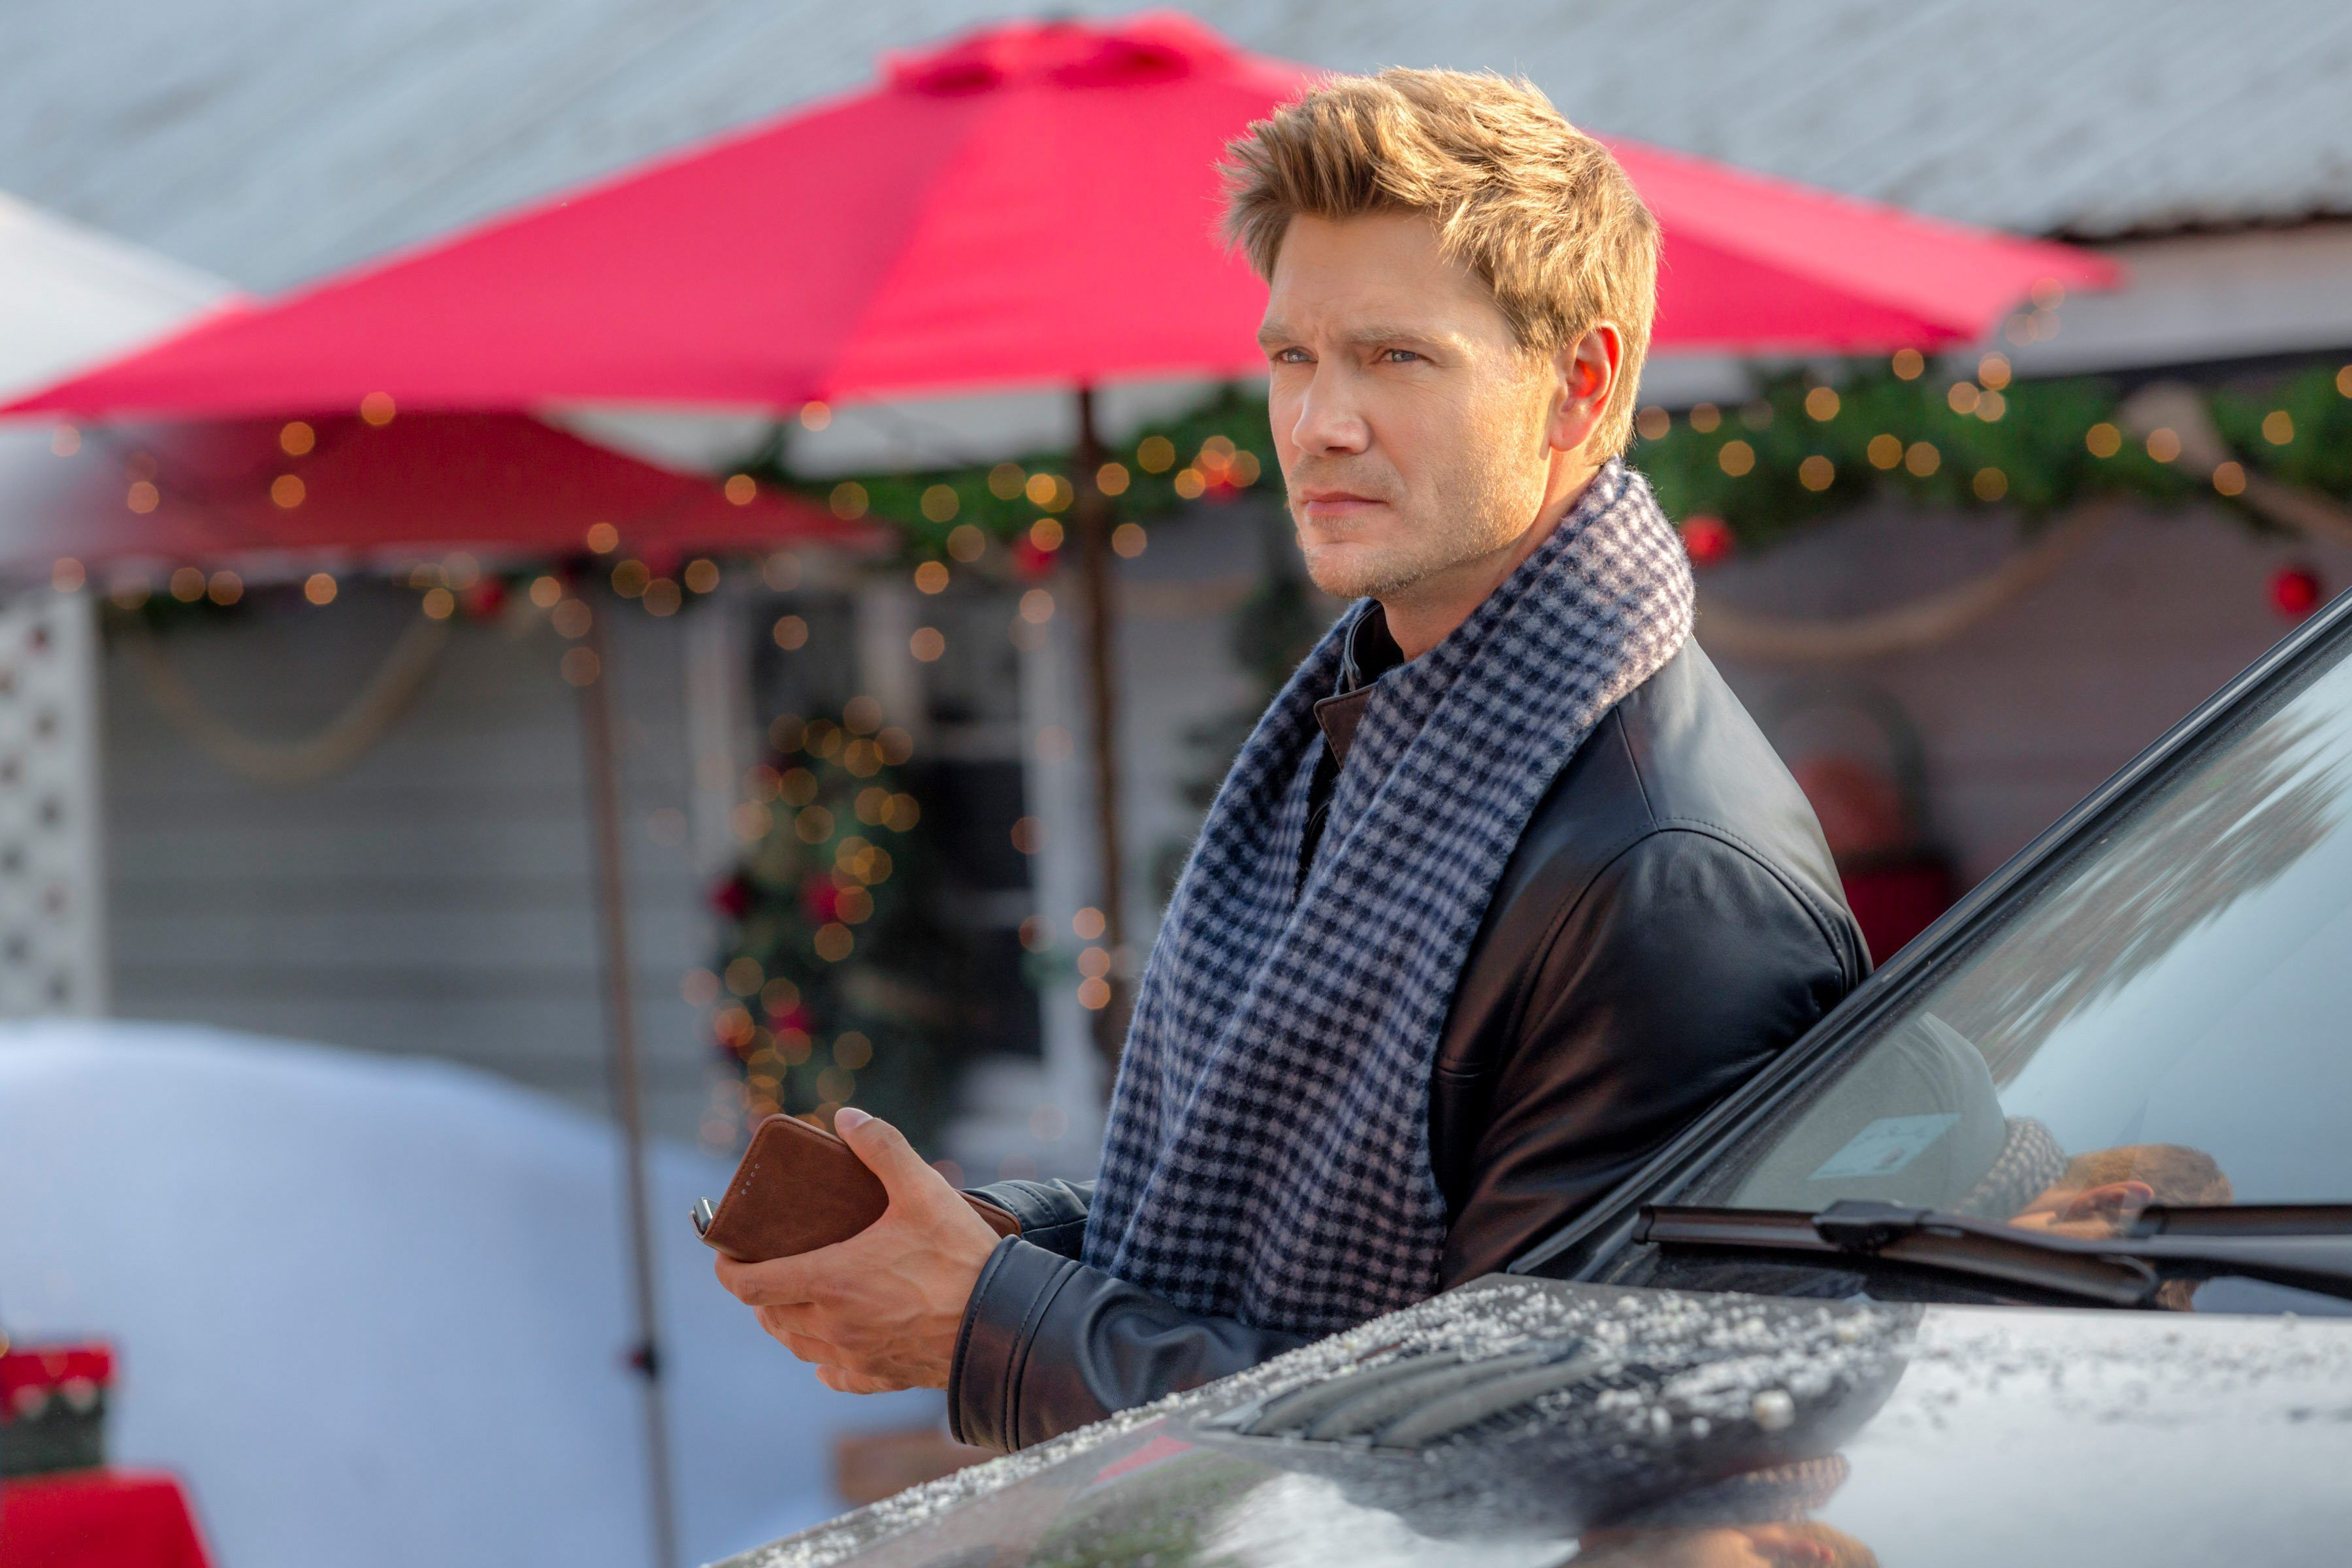 One Tree Hill's Chad Michael Murray And Torrey DeVitto Reunite For Hallmark Christmas Film - Fame10